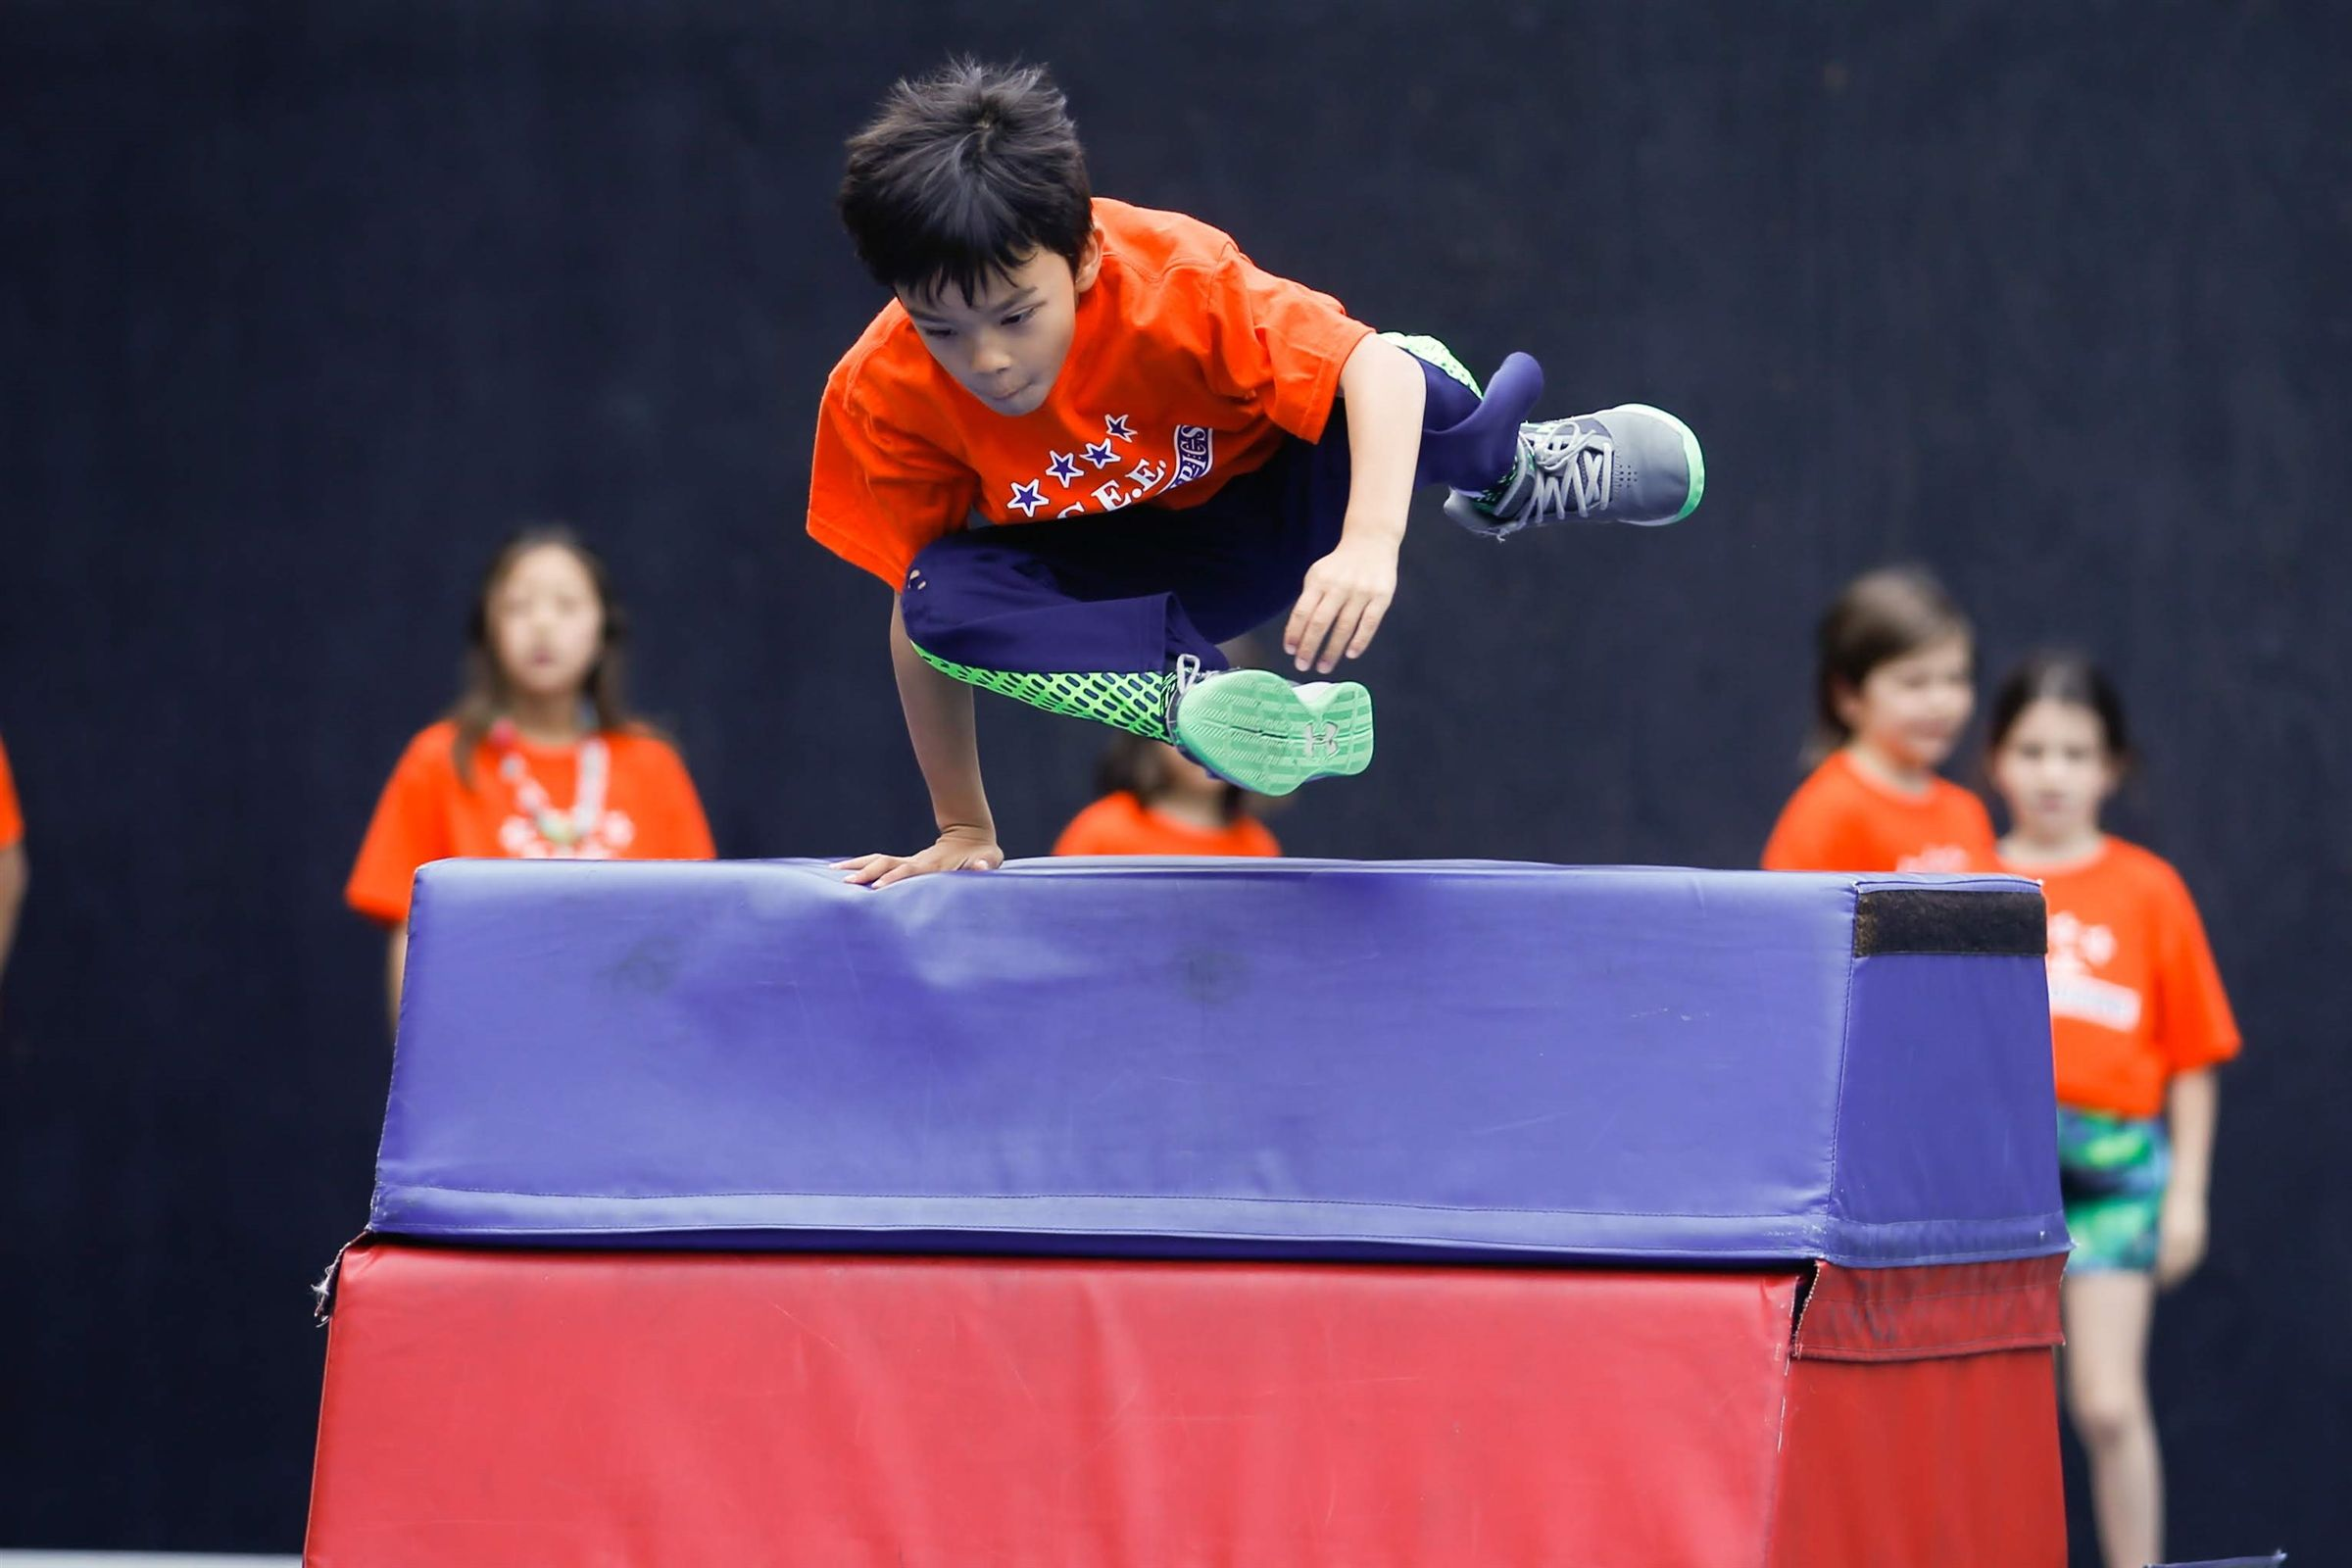 All K-6 students perform dances and compete in athletic events at the annual 2-day Olympics!